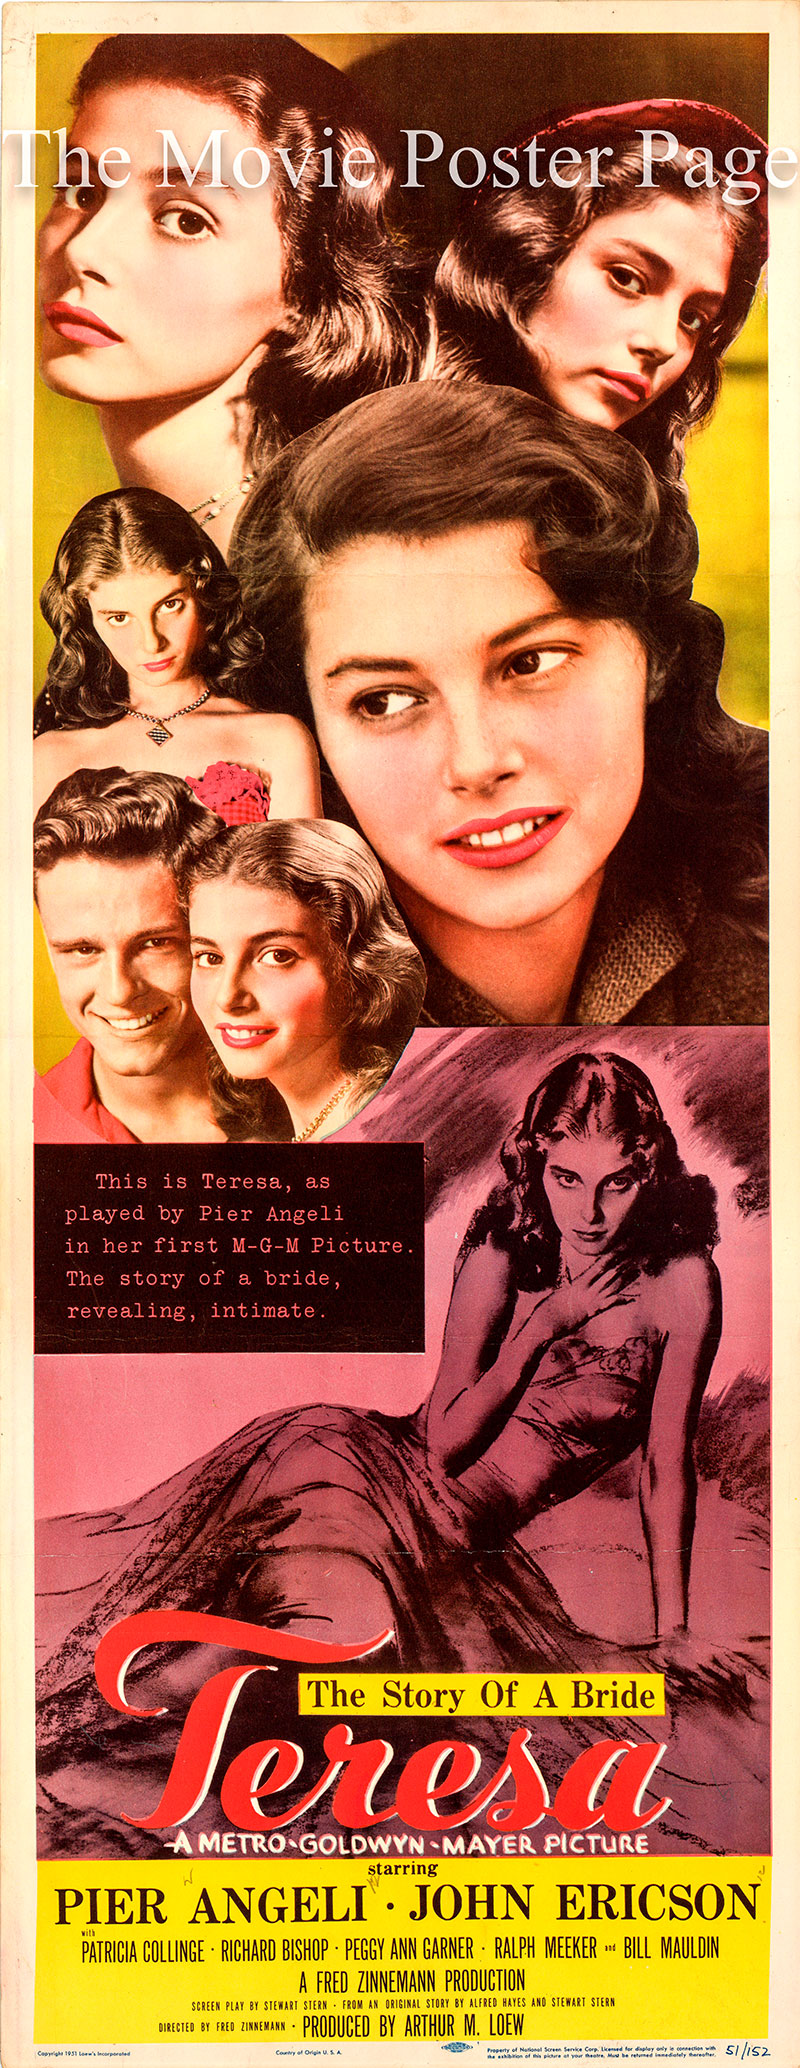 Pictured is a US insert promotional poster for the 1951 Fred Zinnemann film Teresa starring Pier Angeli.